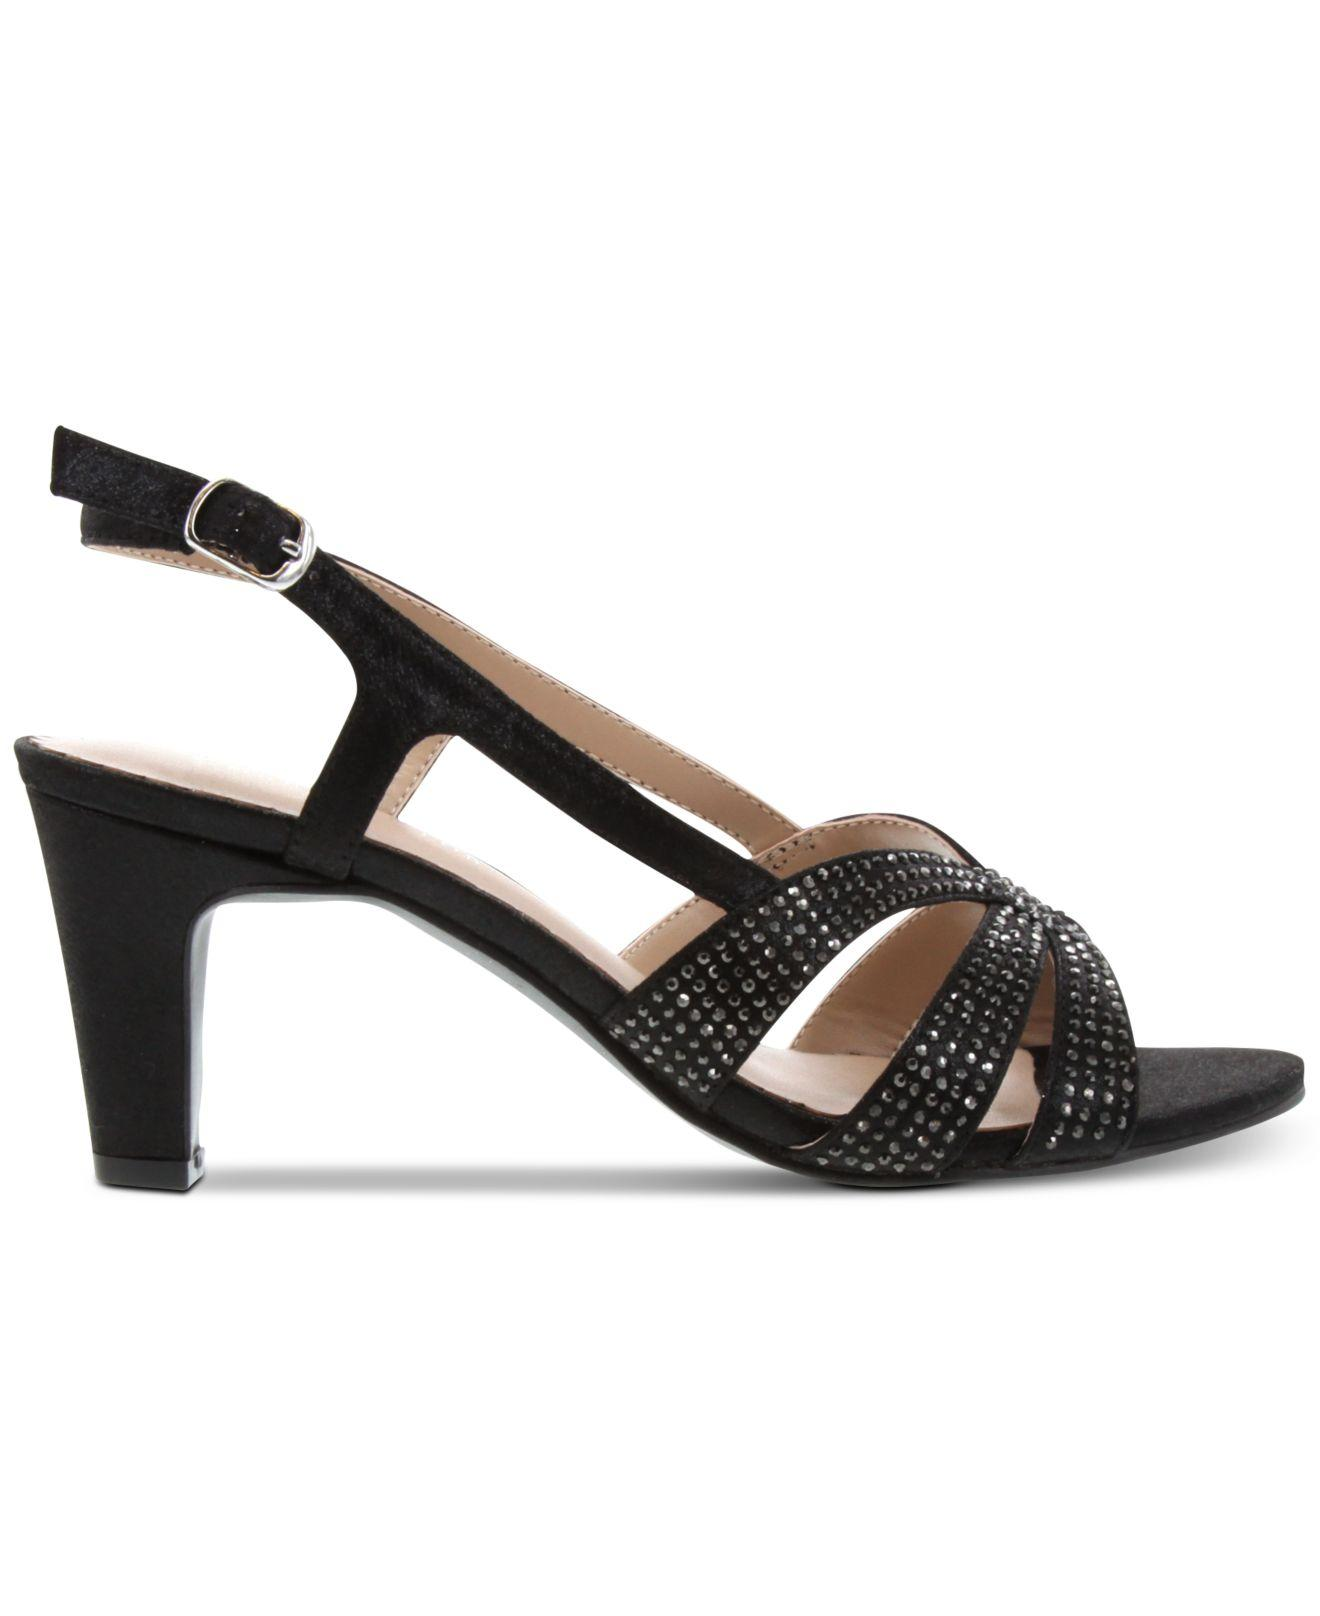 727764c580f9 Lyst - Charter Club Delilaa Embellished Sandals